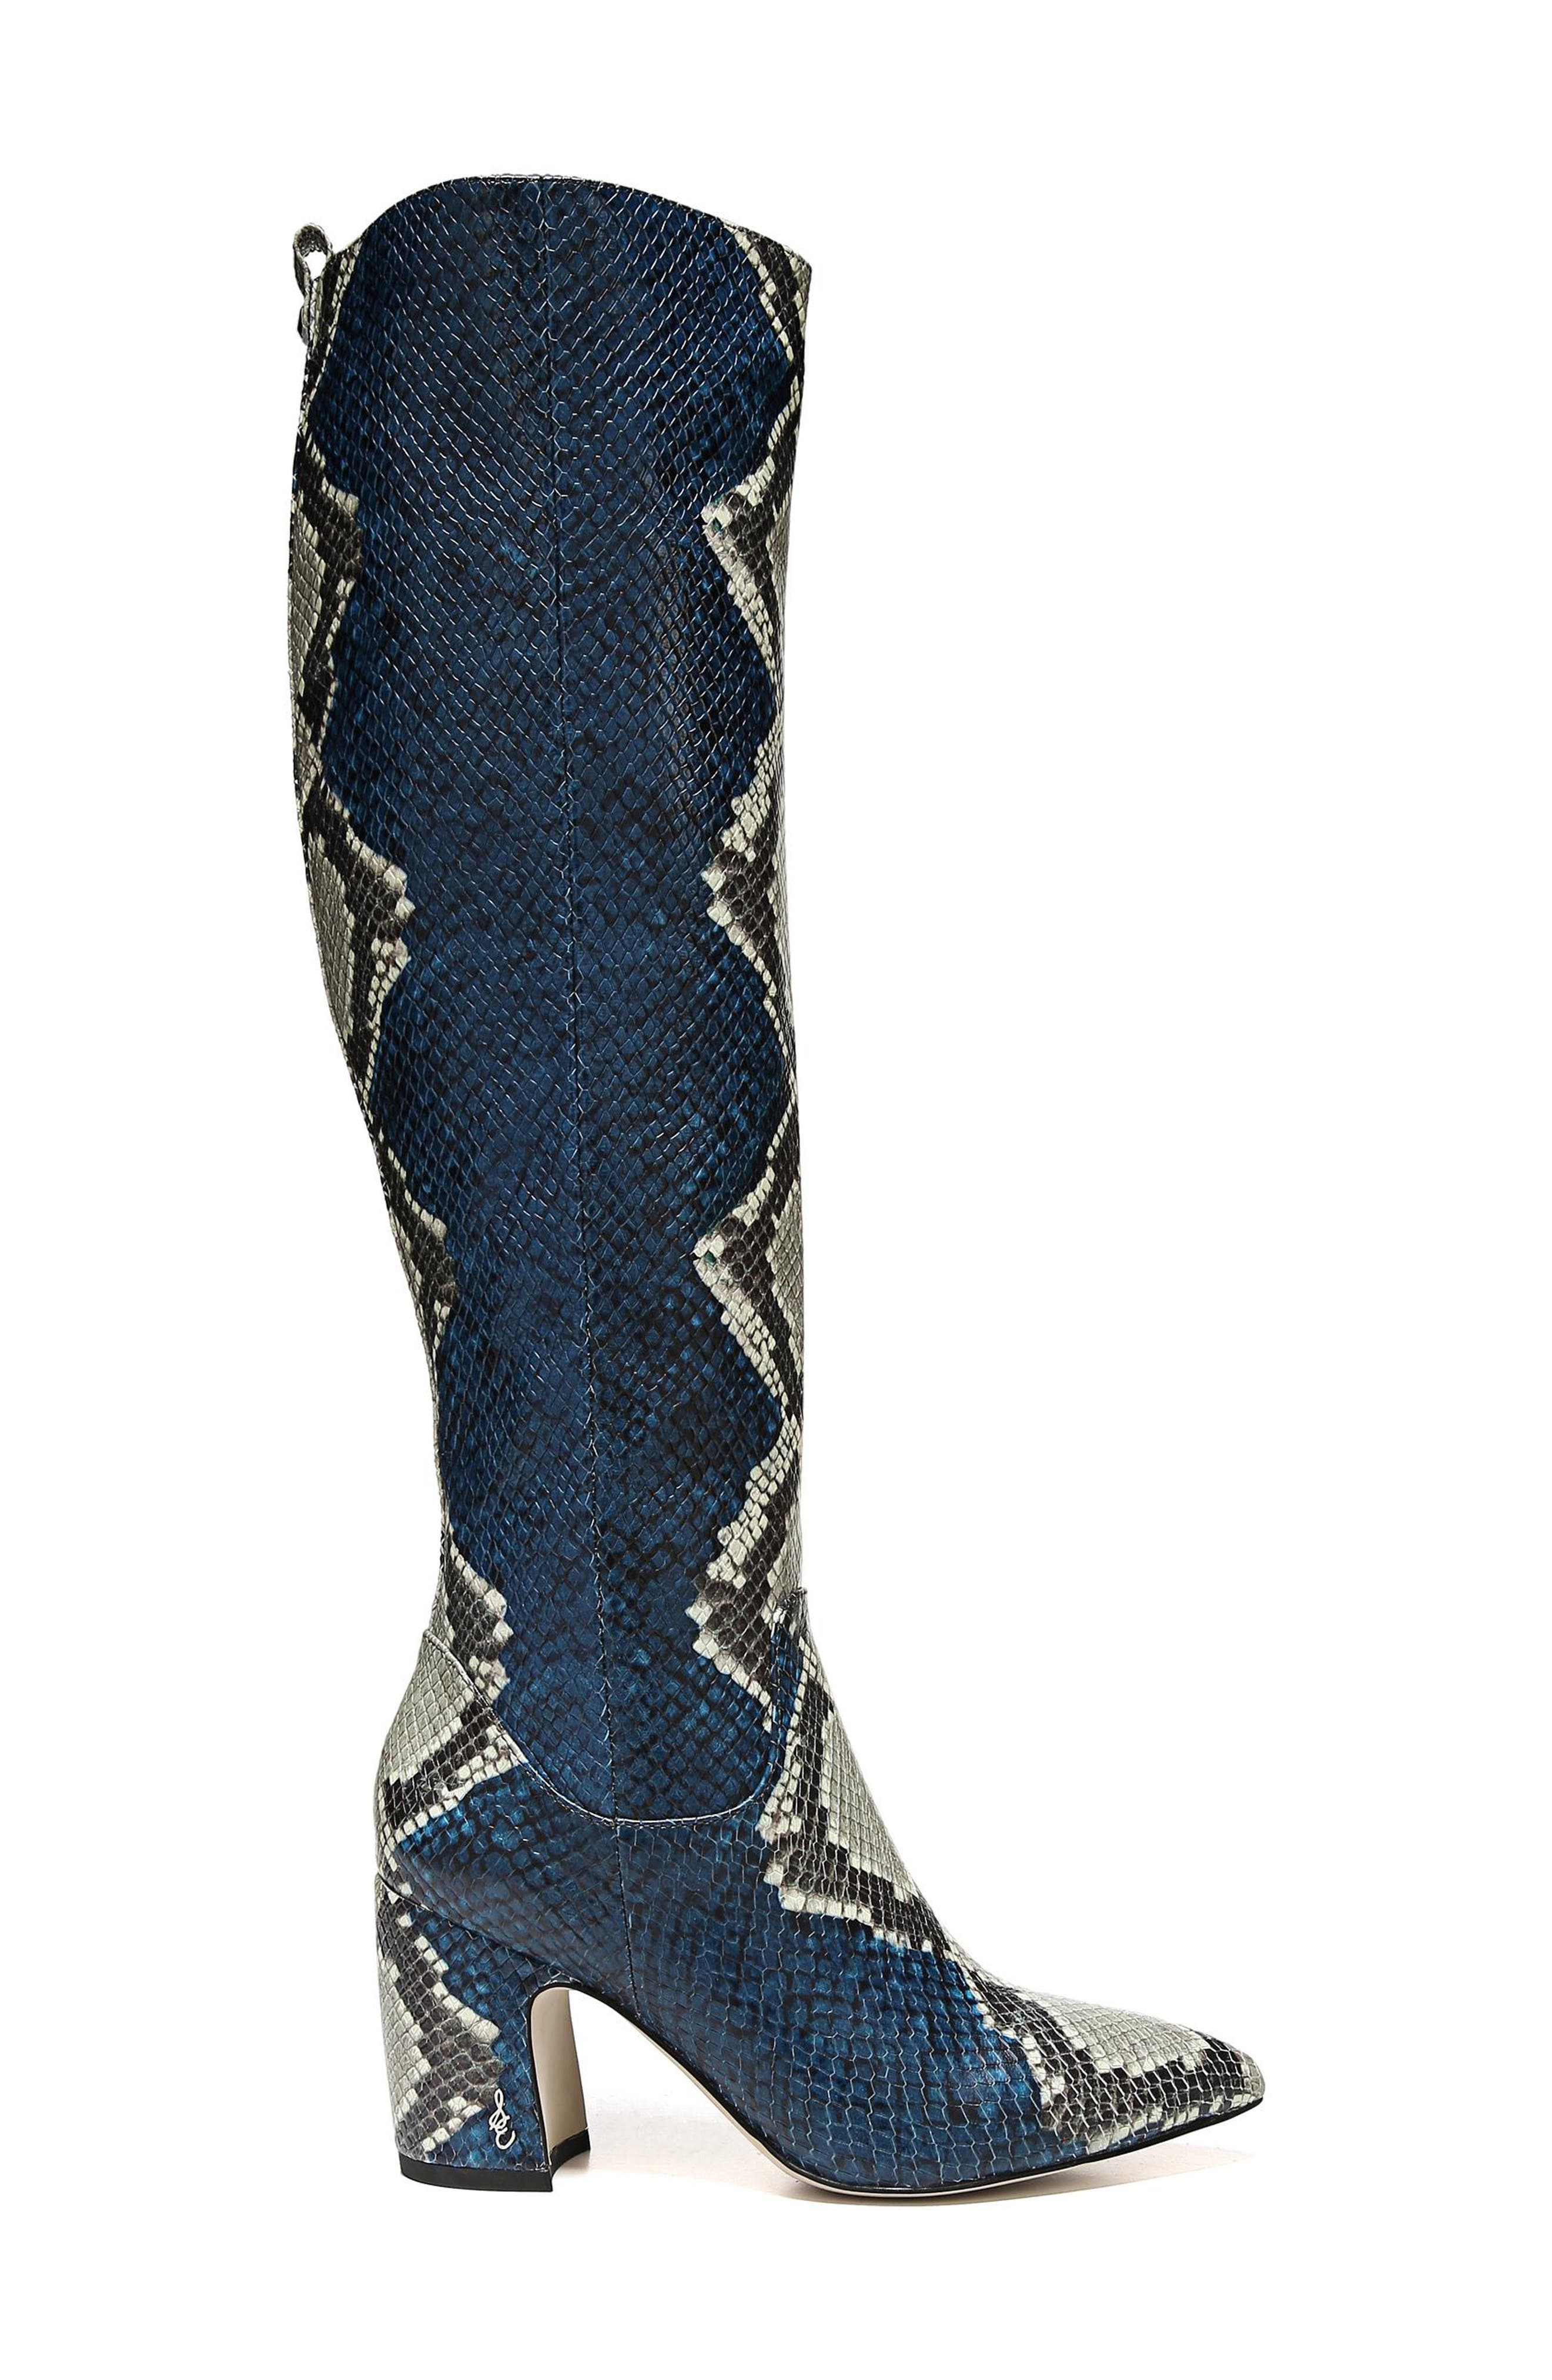 Hai Knee High Boot,                             Alternate thumbnail 3, color,                             PEACOCK EMBOSSED LEATHER